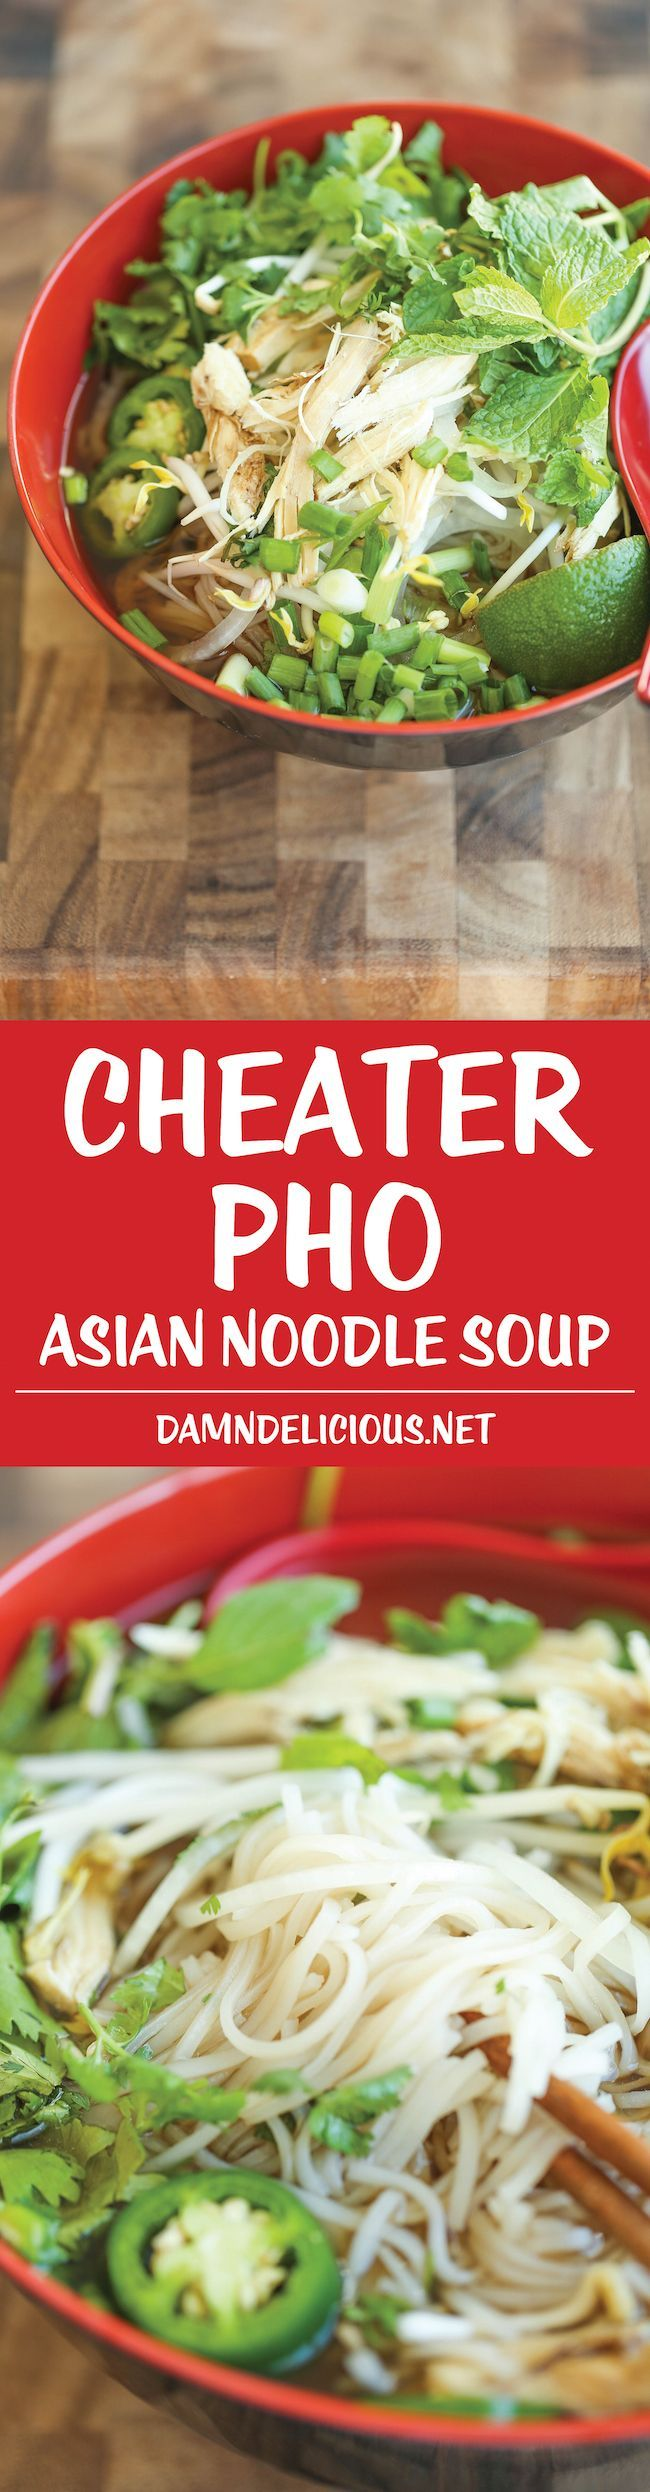 30 minute Pho (Asian Noodle Soup) - With this simplified version, you can have homemade pho on your table in 30 min or less. It doesn't get any easier!